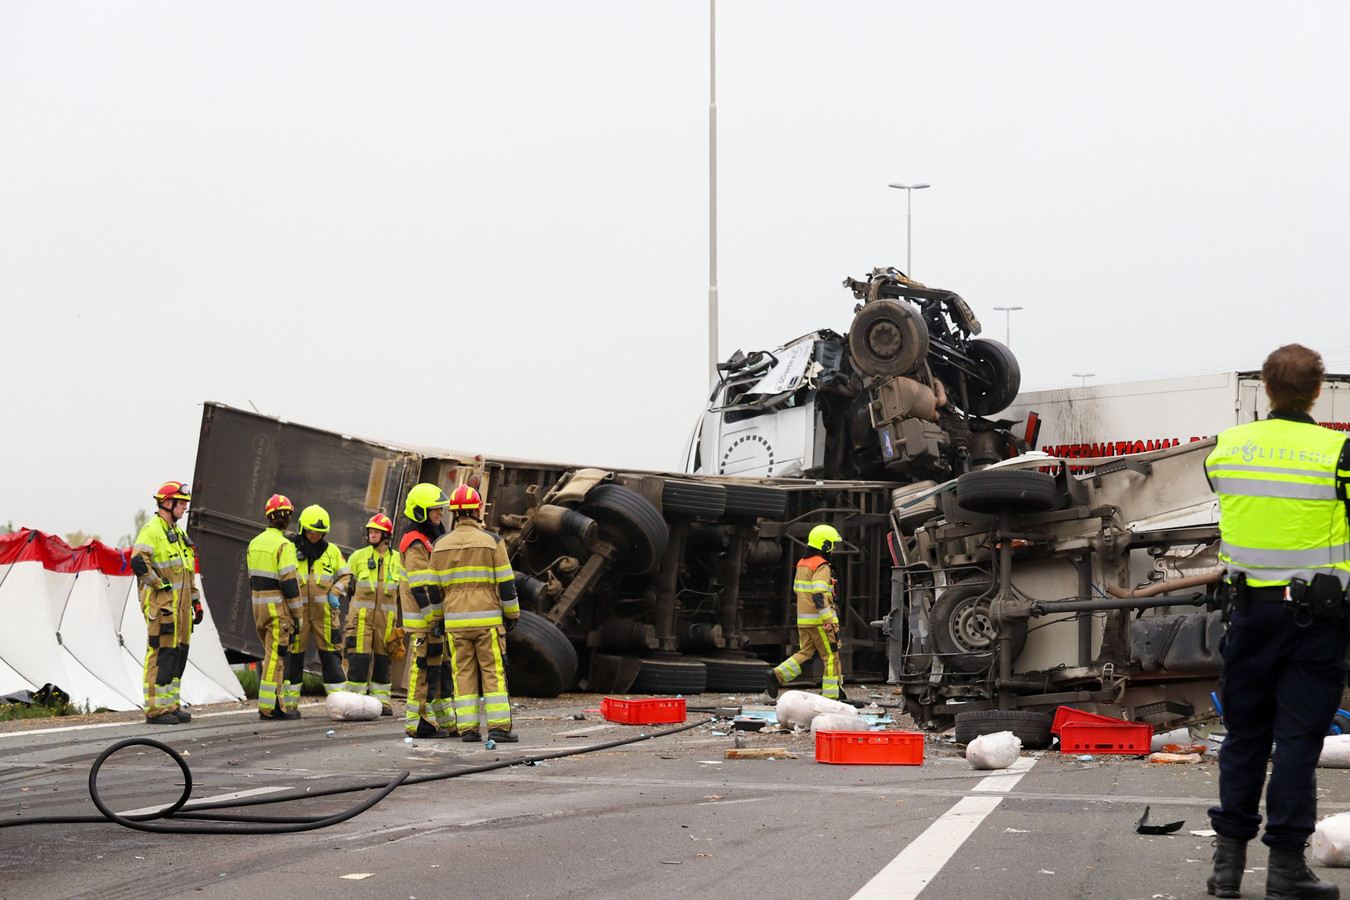 De ravage op de A73 is enorm.